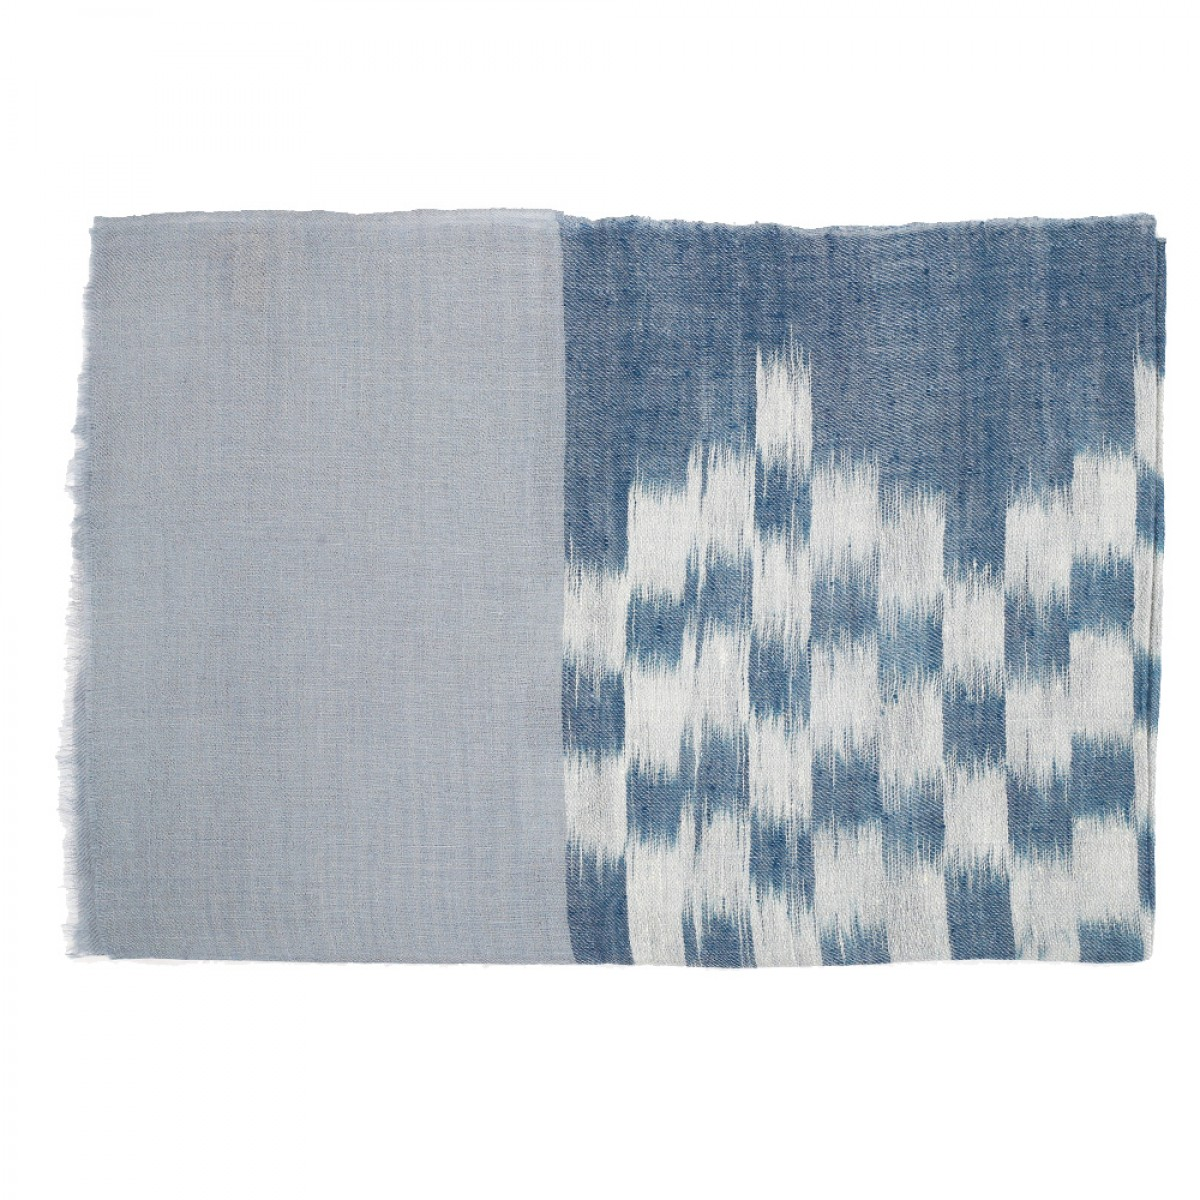 Men's Cashmere Pashmina Scarf - Natural Light Blue